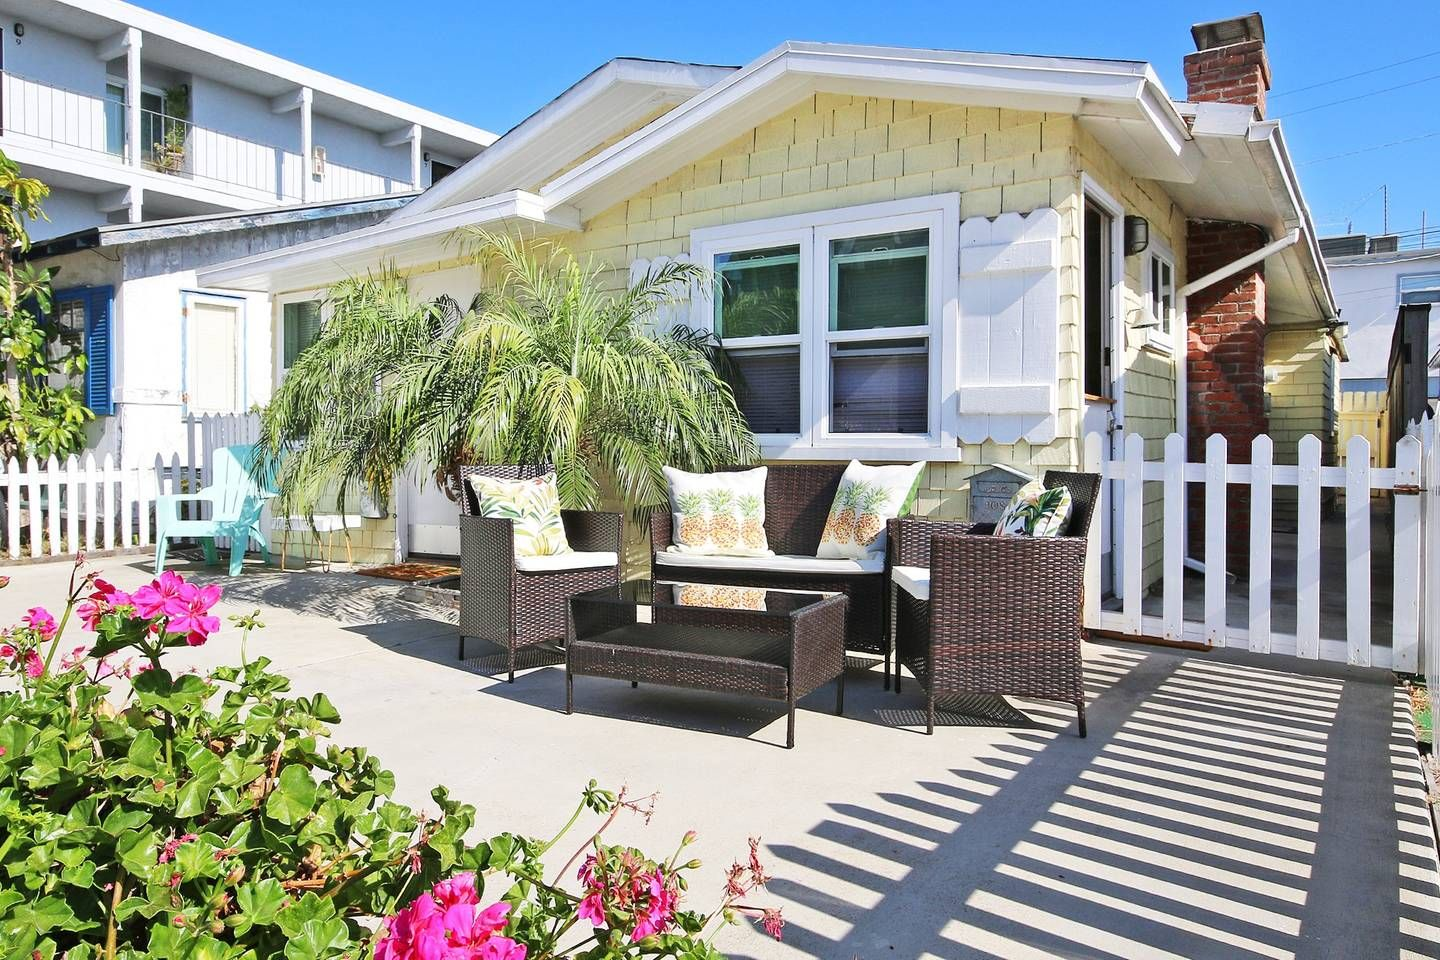 Tiny Houses For Rent In San Diego Airbnb Mission Beach